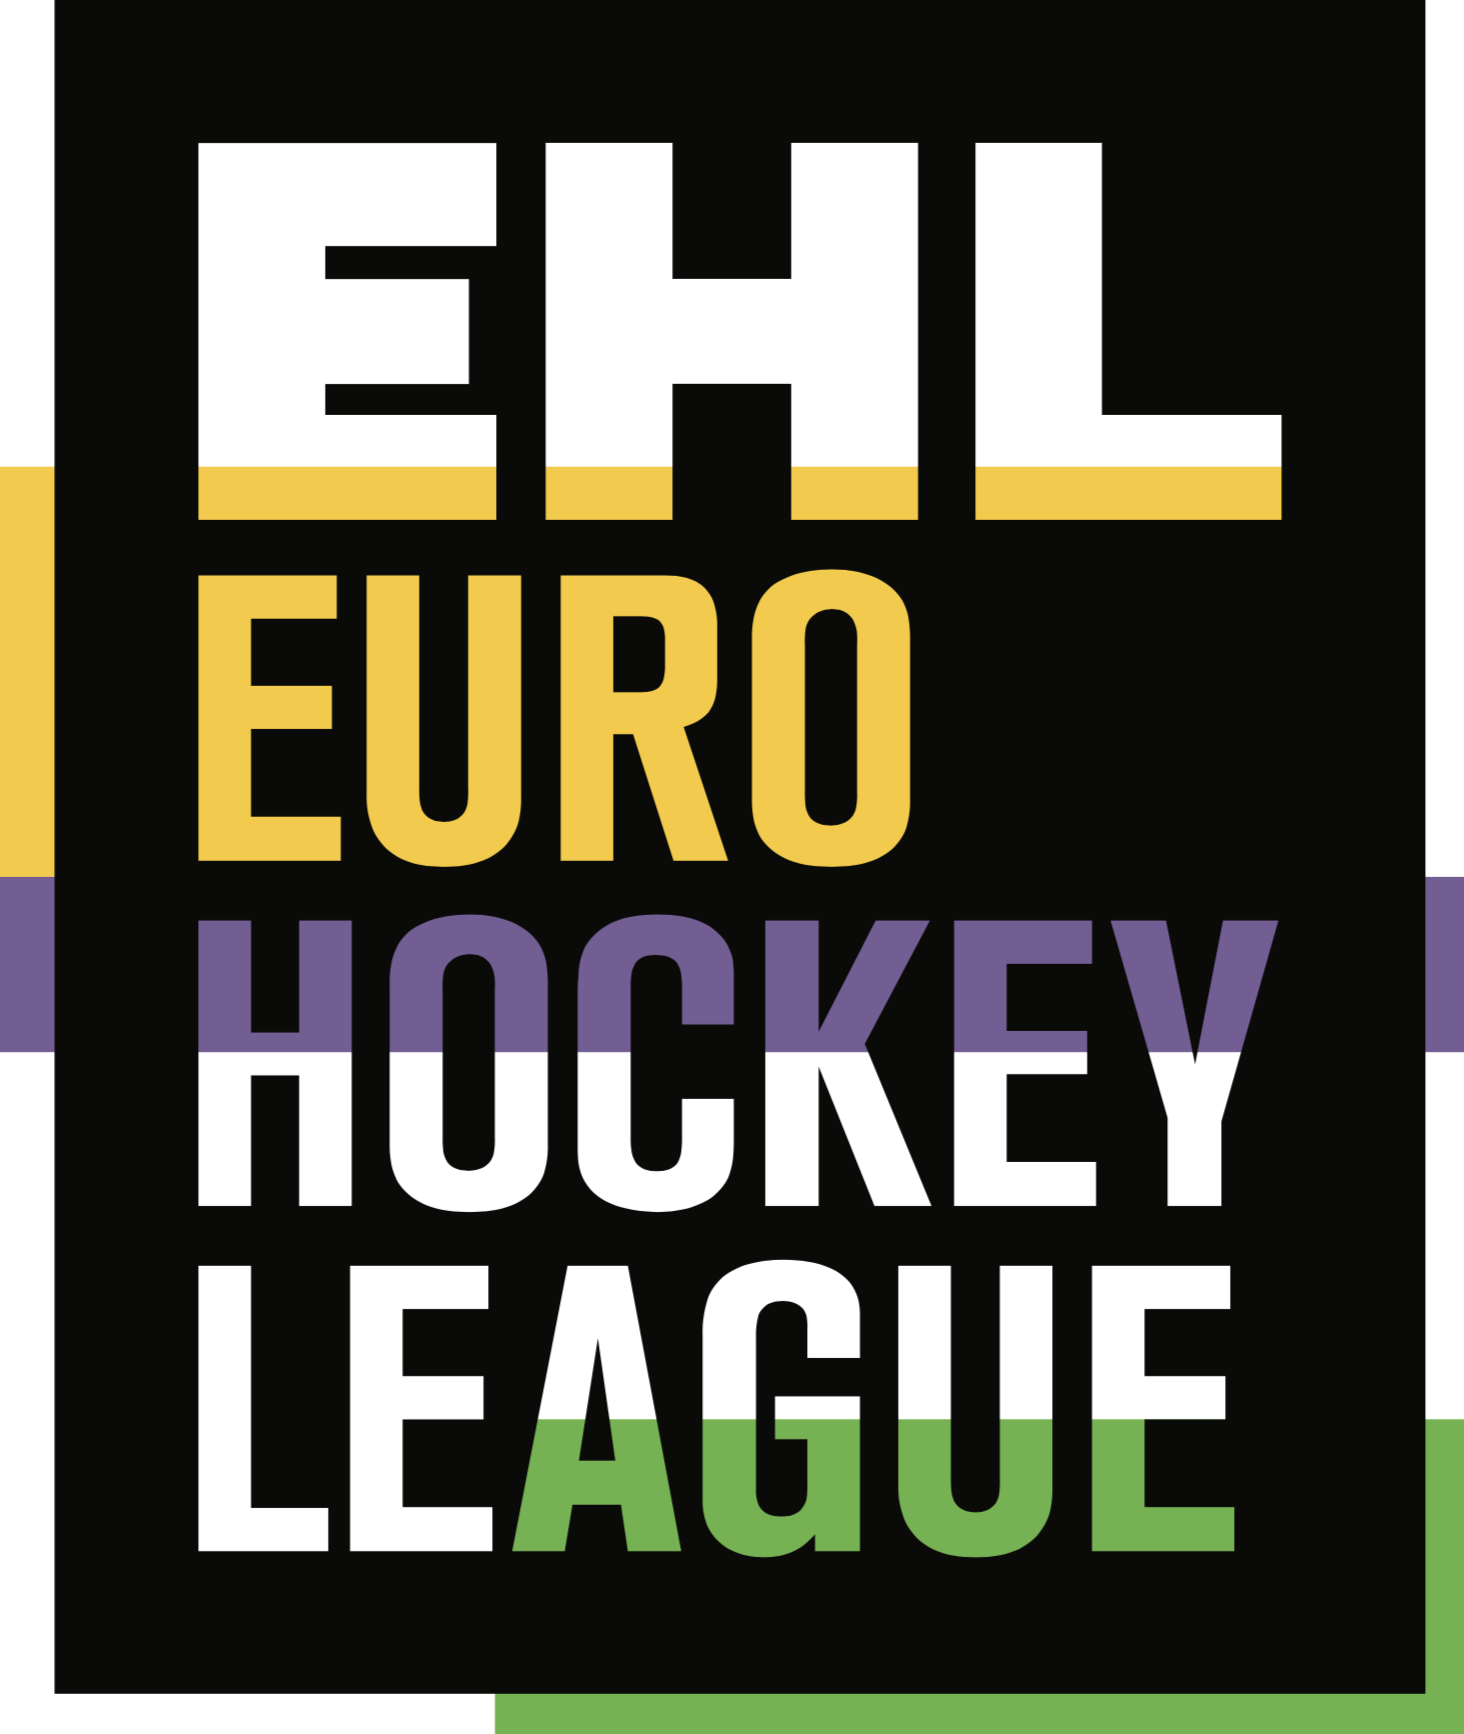 Euro Hockey League